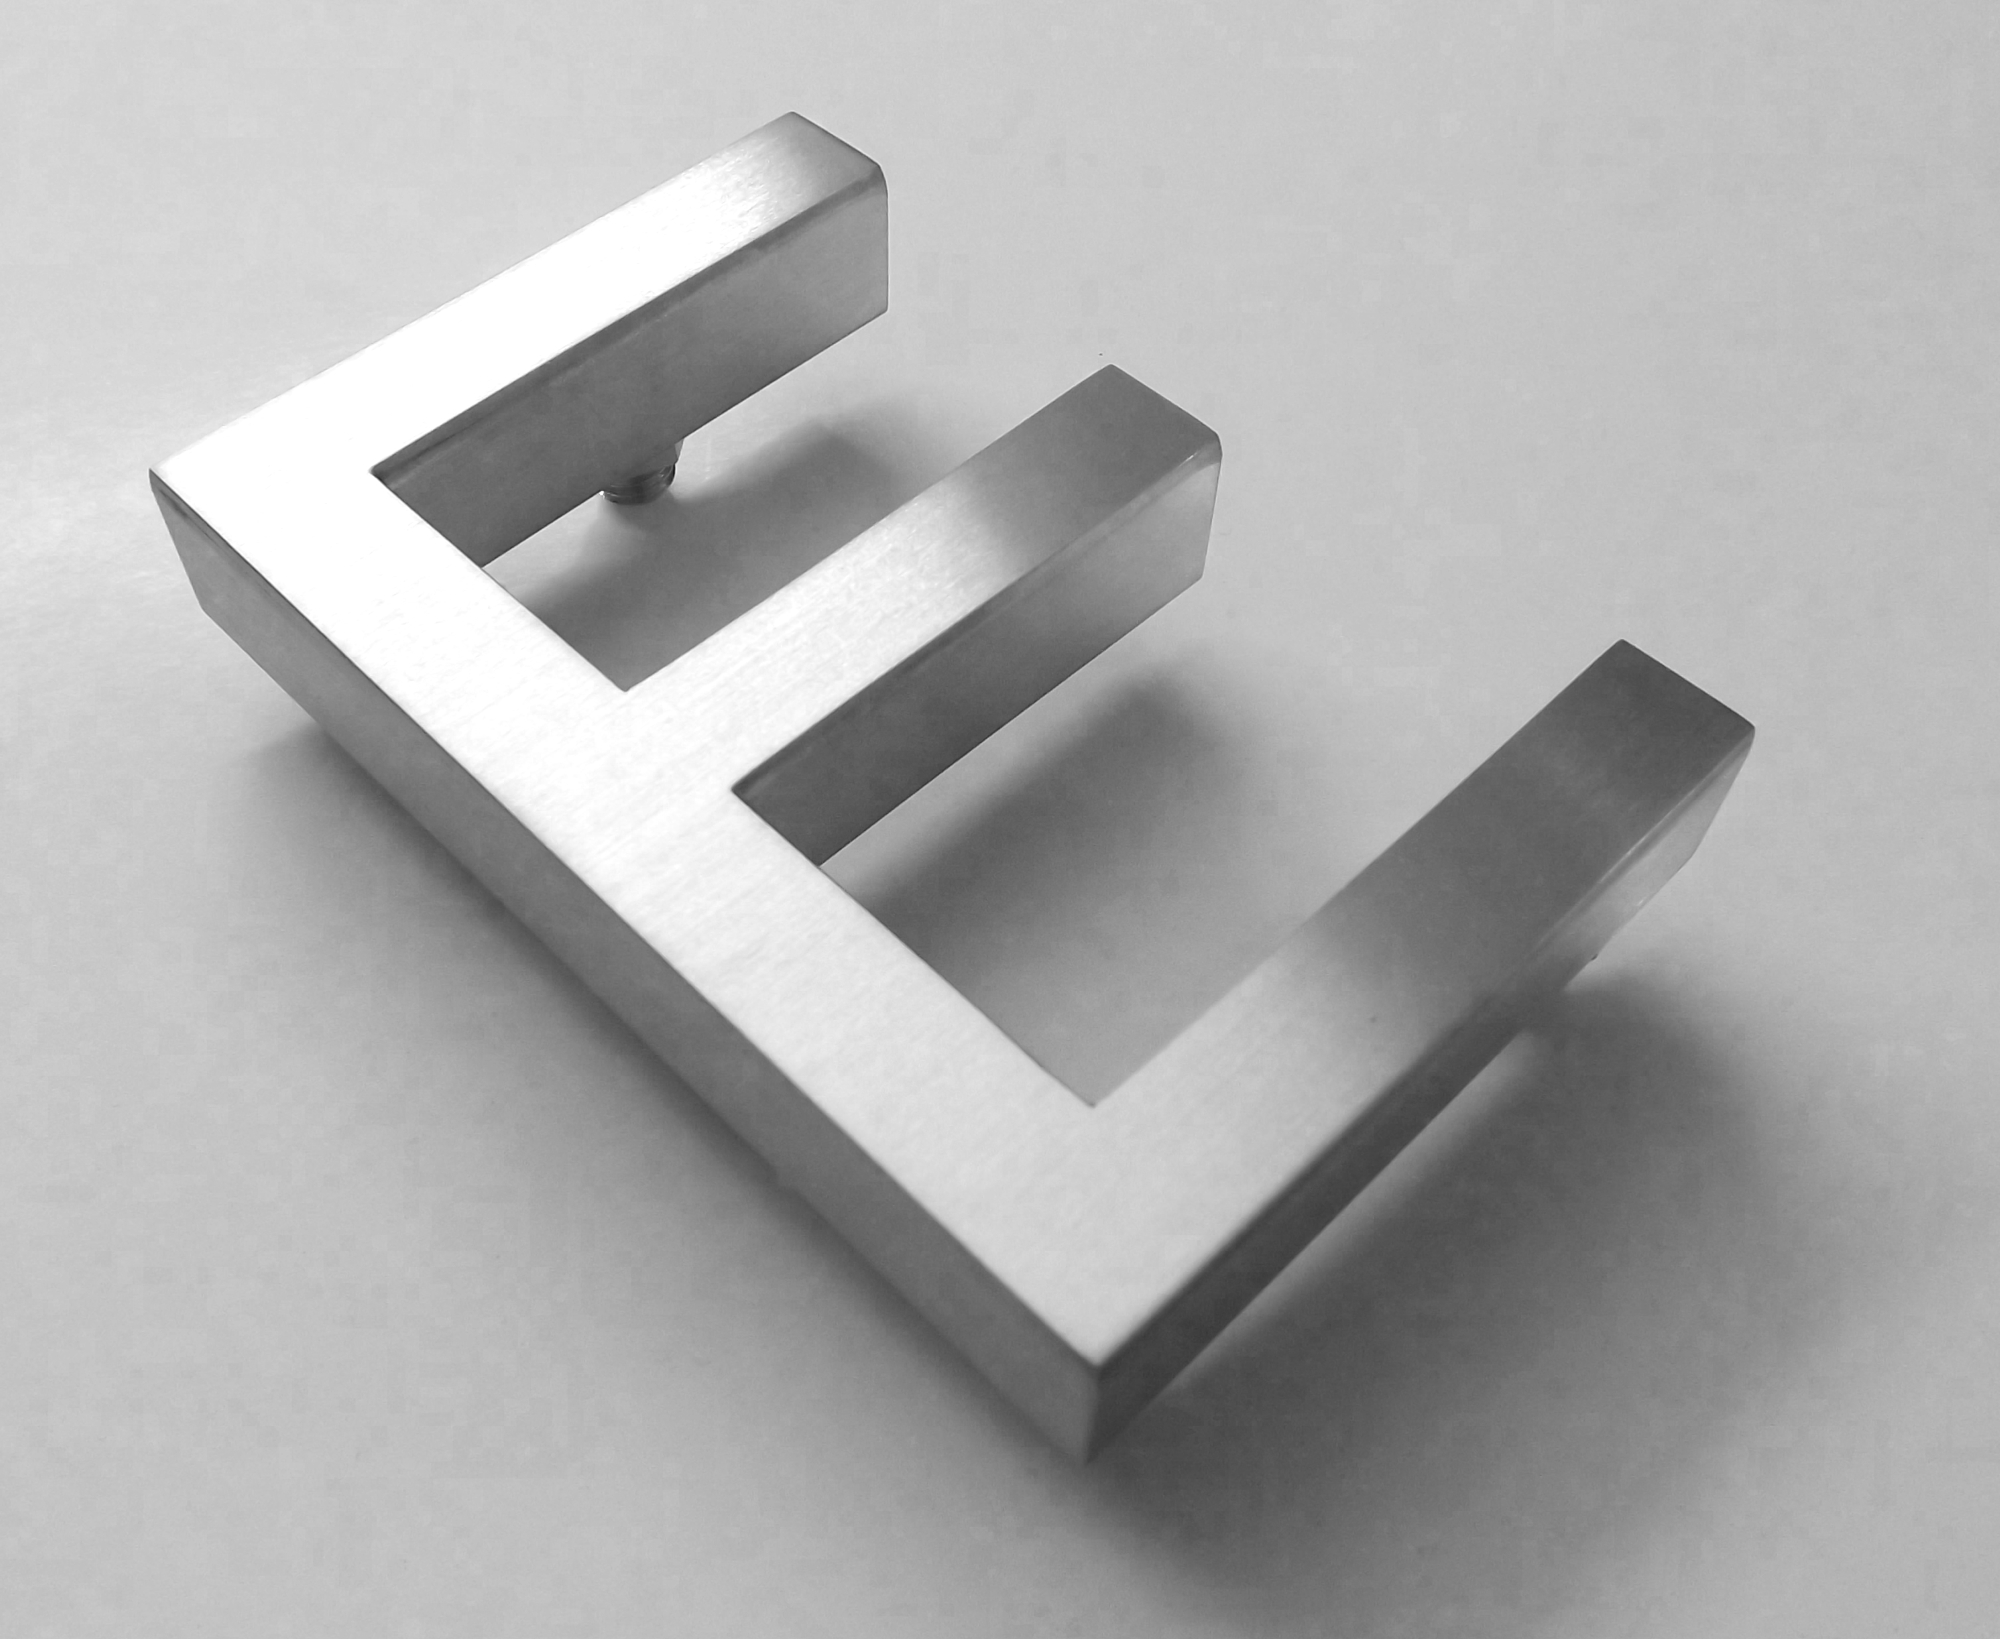 002-stainless-steel-letter-e-built-up-2000pix  D Letter E Template on printable box, cut out,